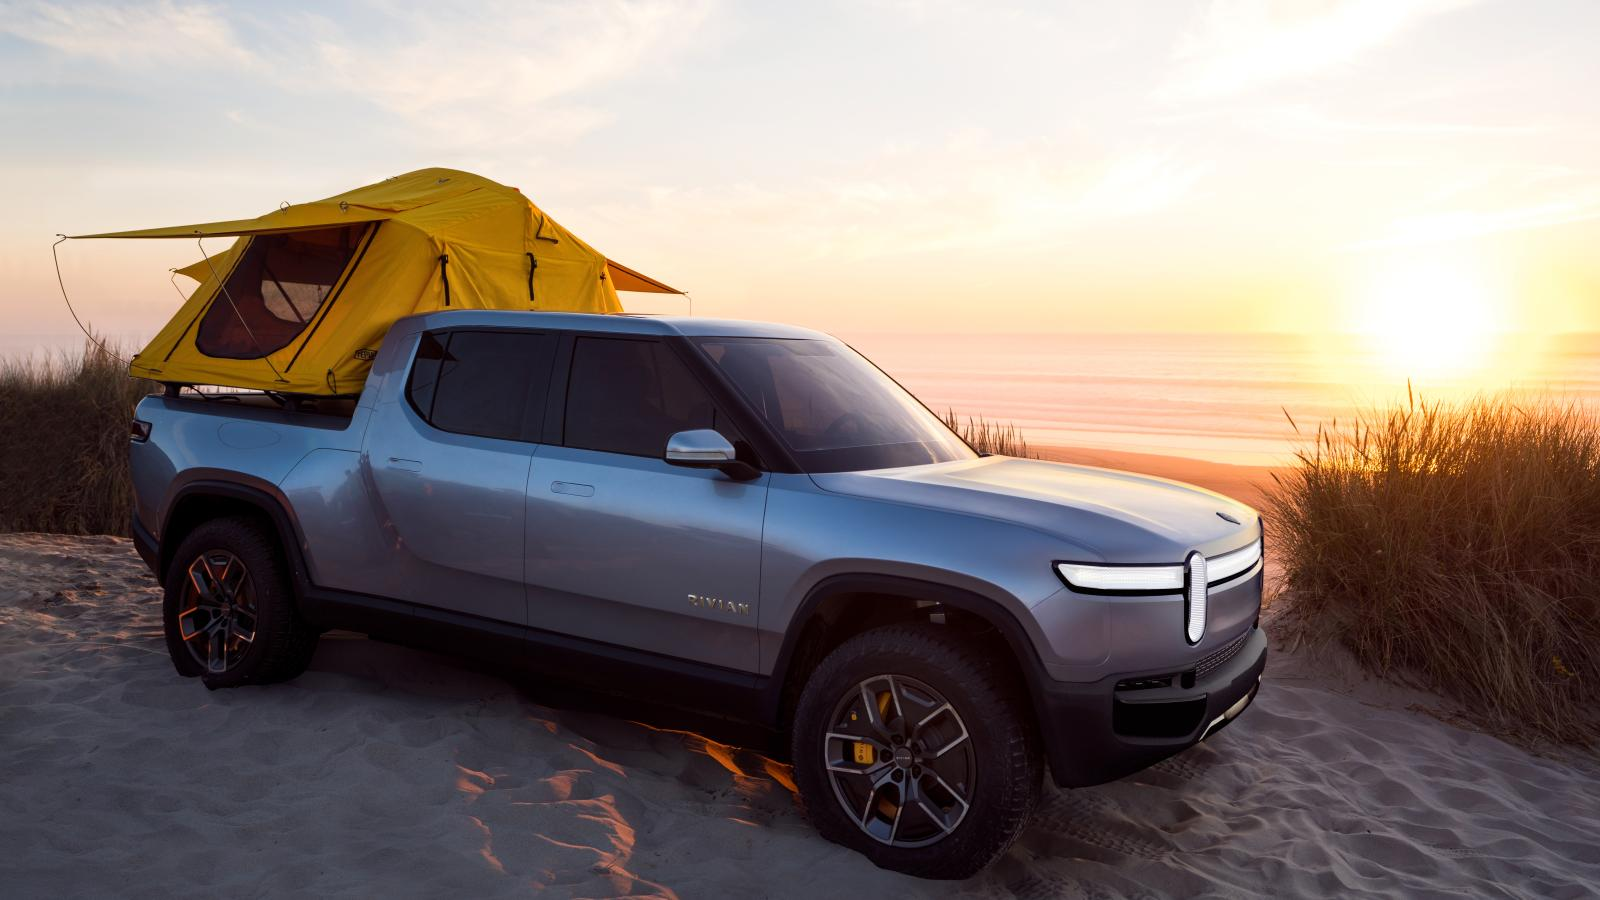 For 500 Million Rivian Will Teach Ford How To Make Electric Vehicles